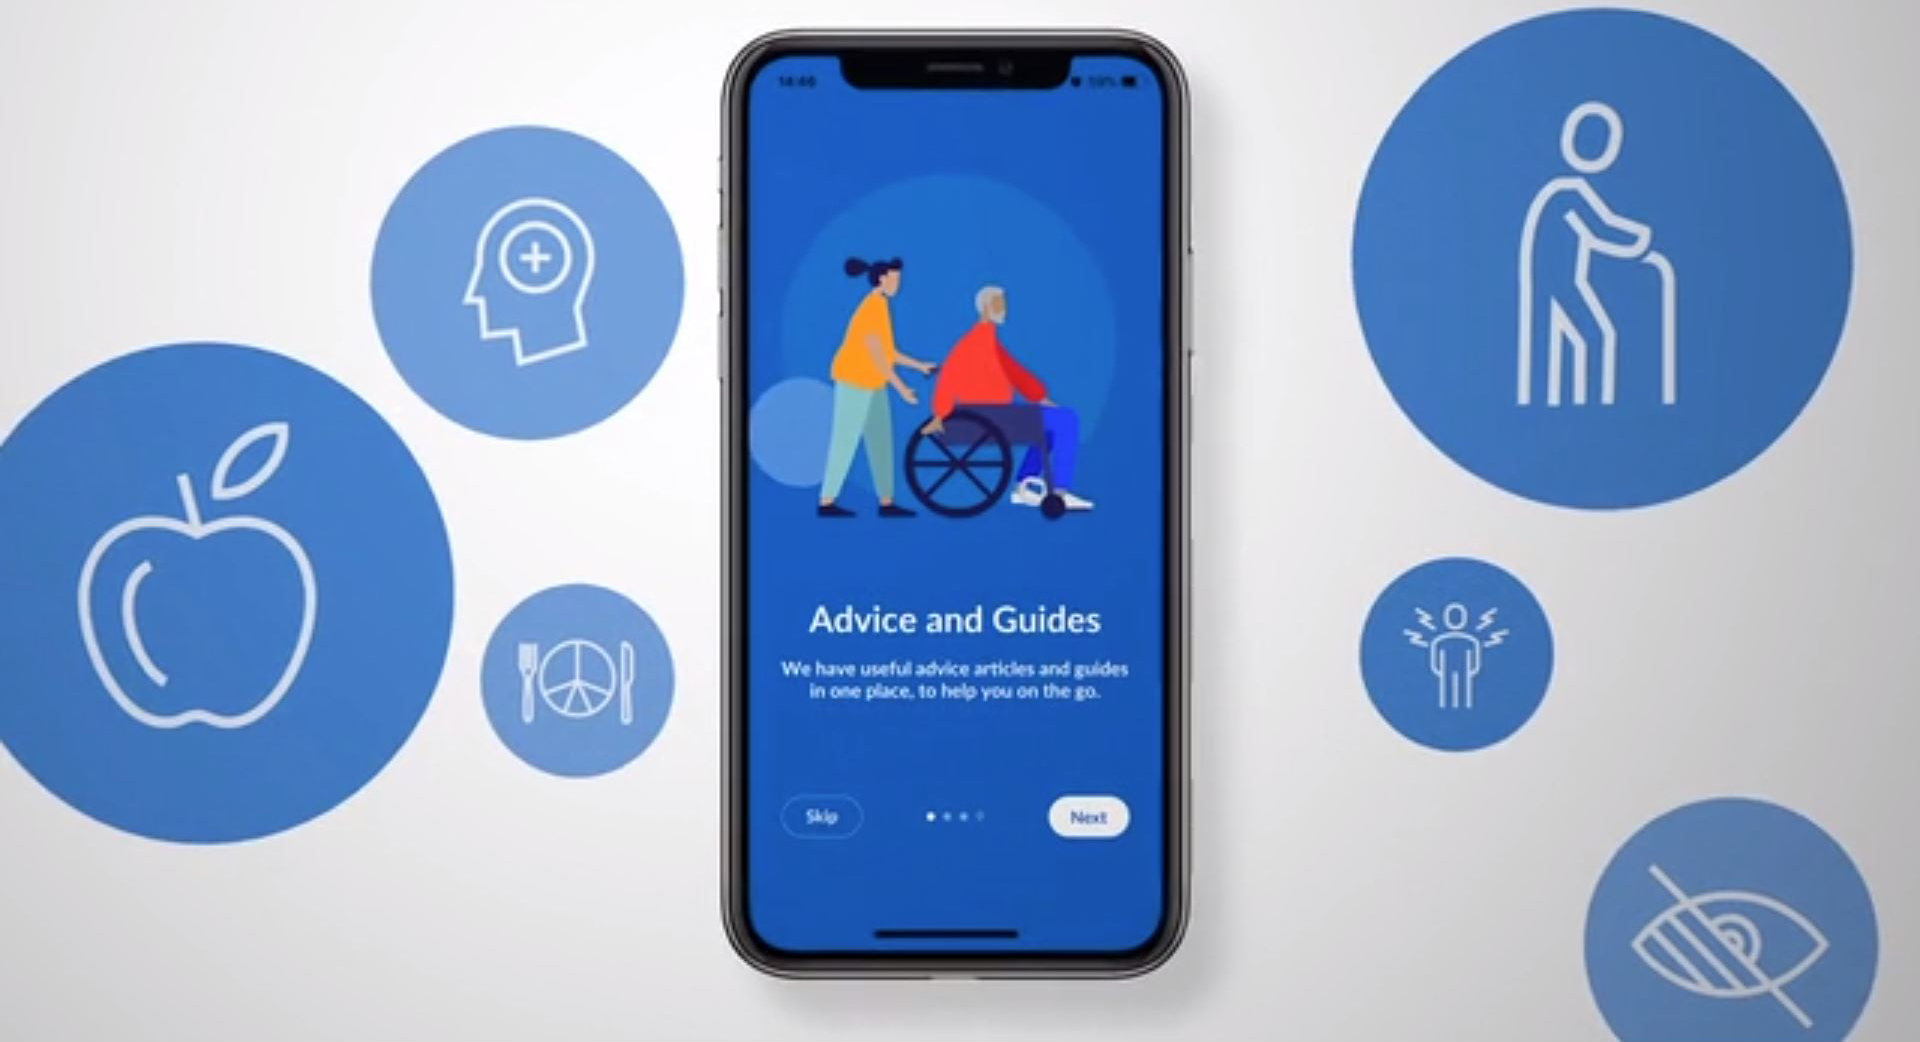 Carer app screen showing on a mobile